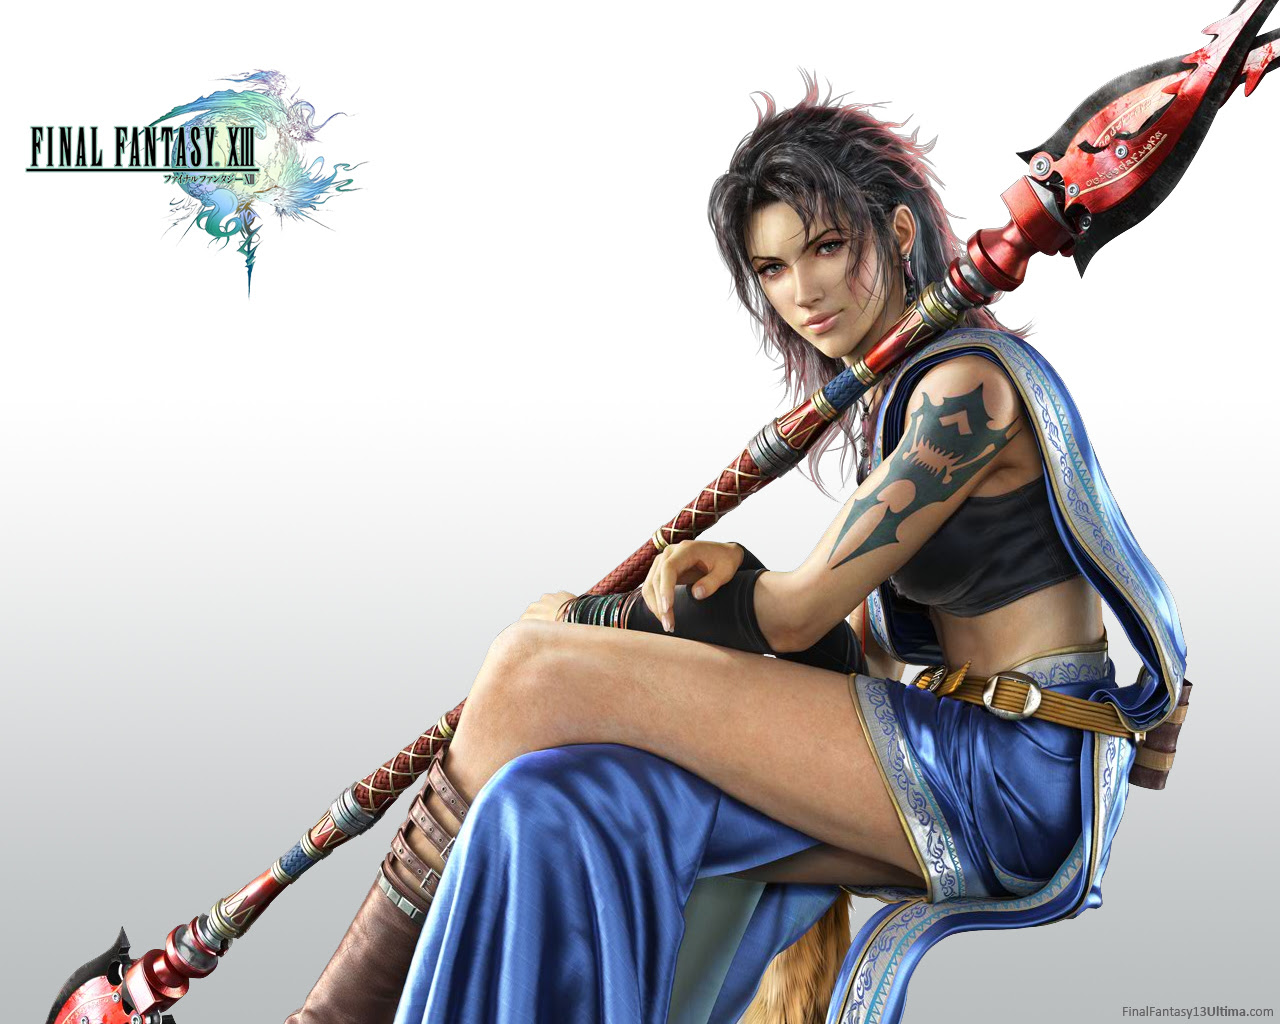 Ff Xiii Wallpaper Final Fantasy Xiii Wallpaper 32680103 Fanpop